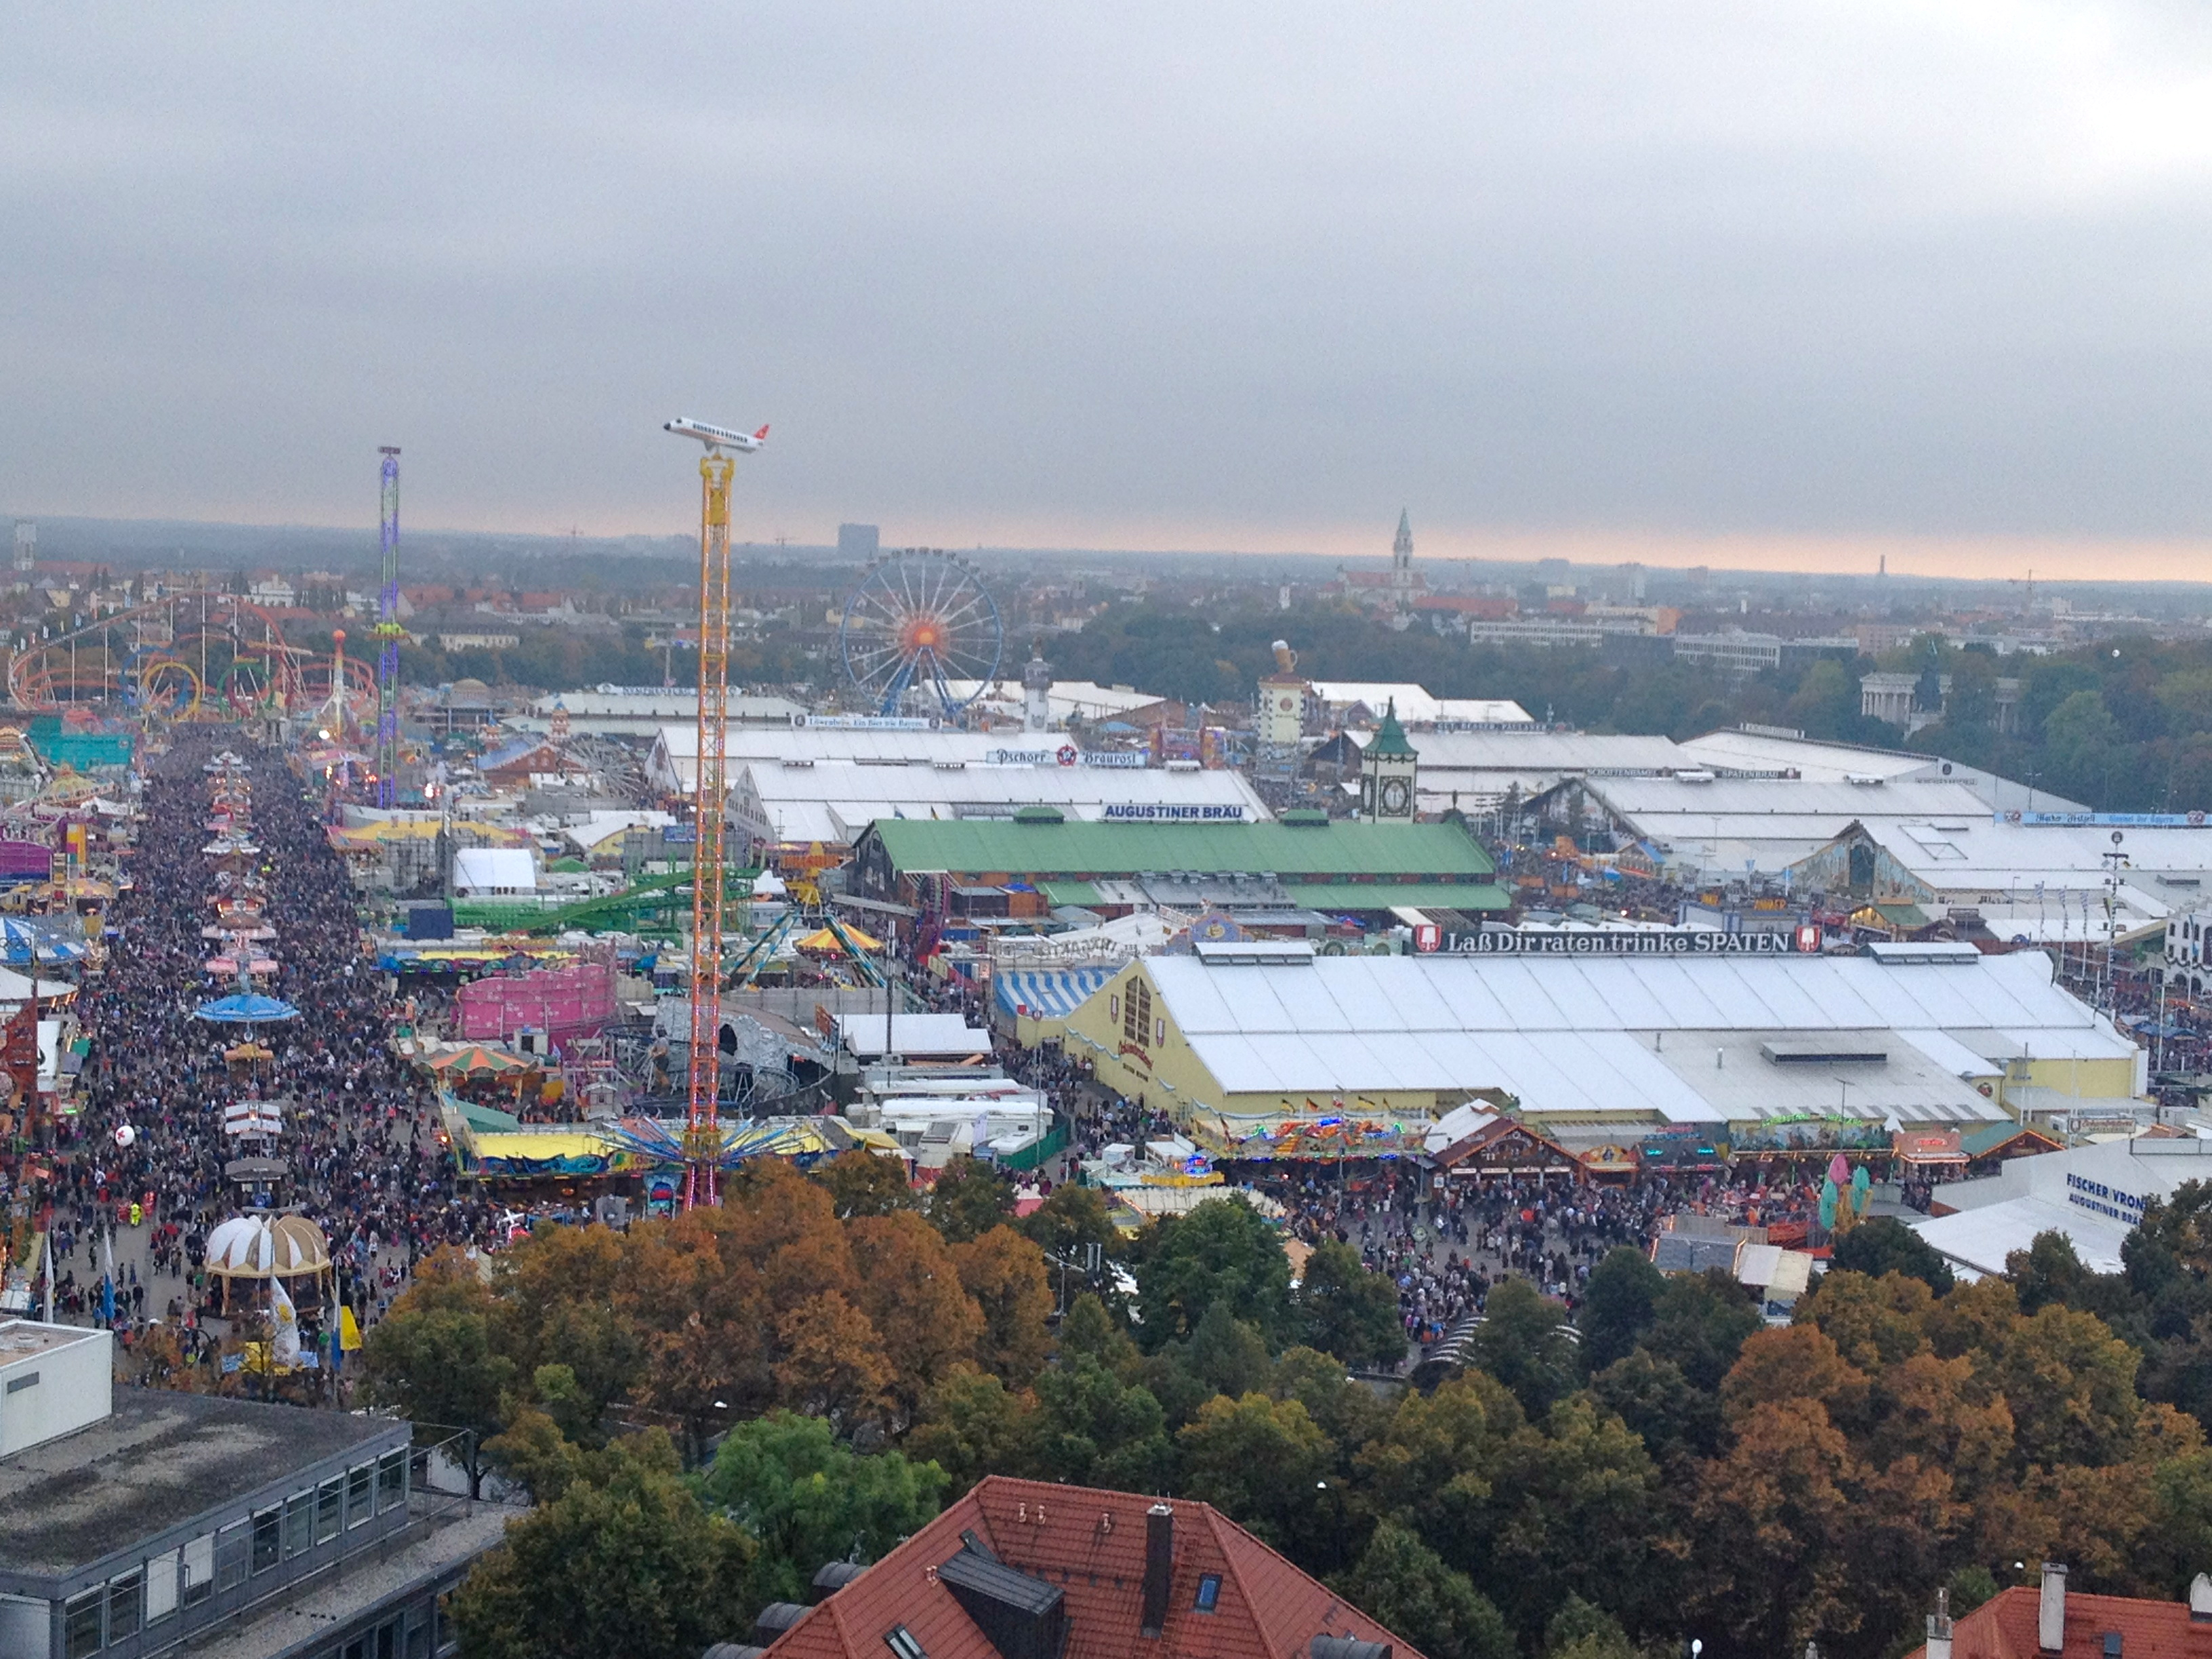 bird's eye view of Oktoberfest